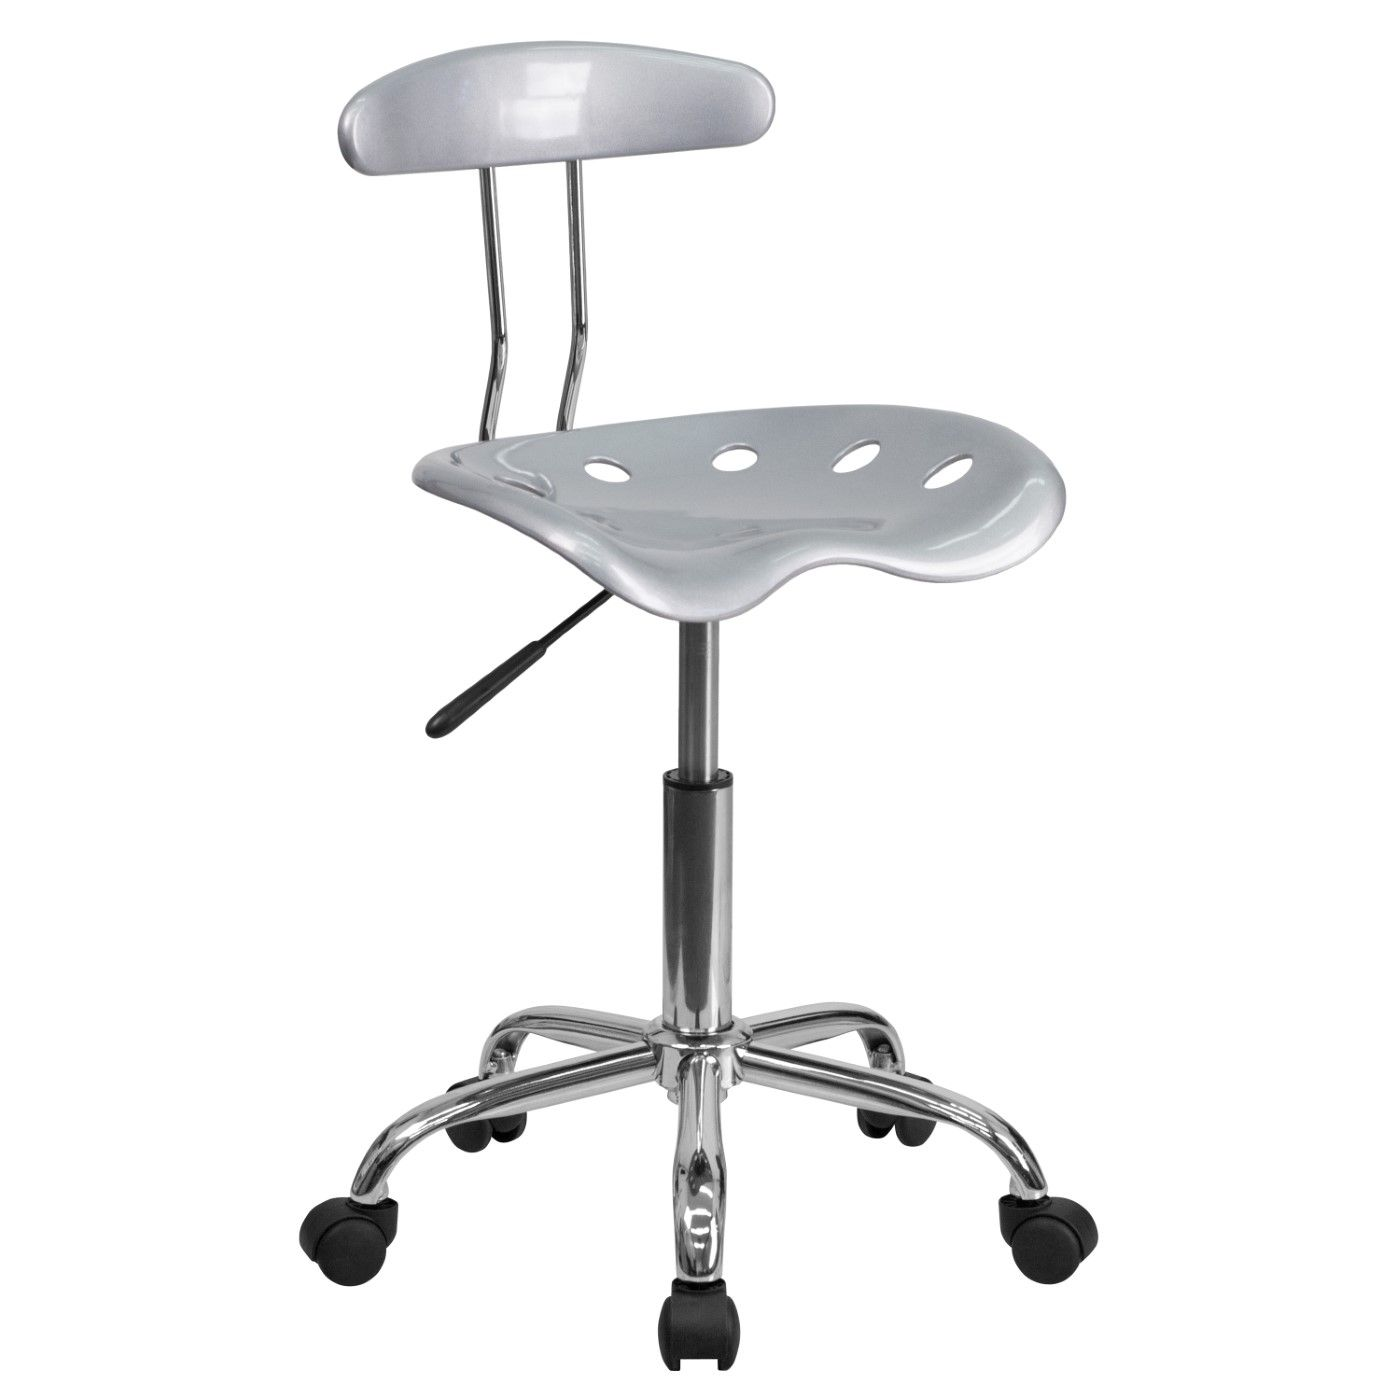 Vibrant Silver and Chrome Swivel Task Office Chair with Tractor Seat